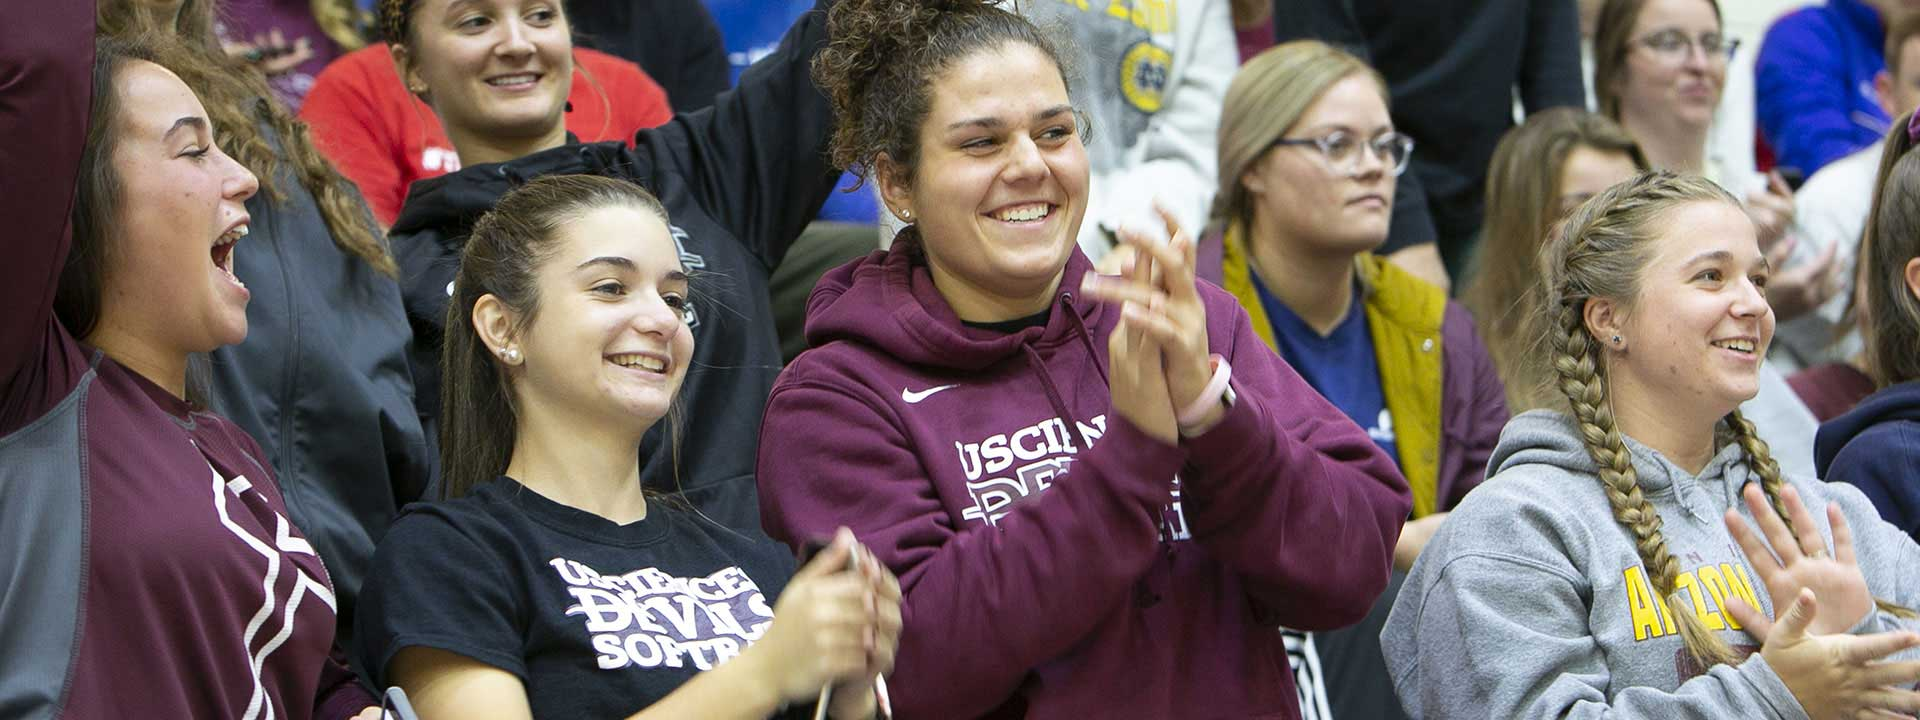 USciences students at the ARC cheering on the Devils